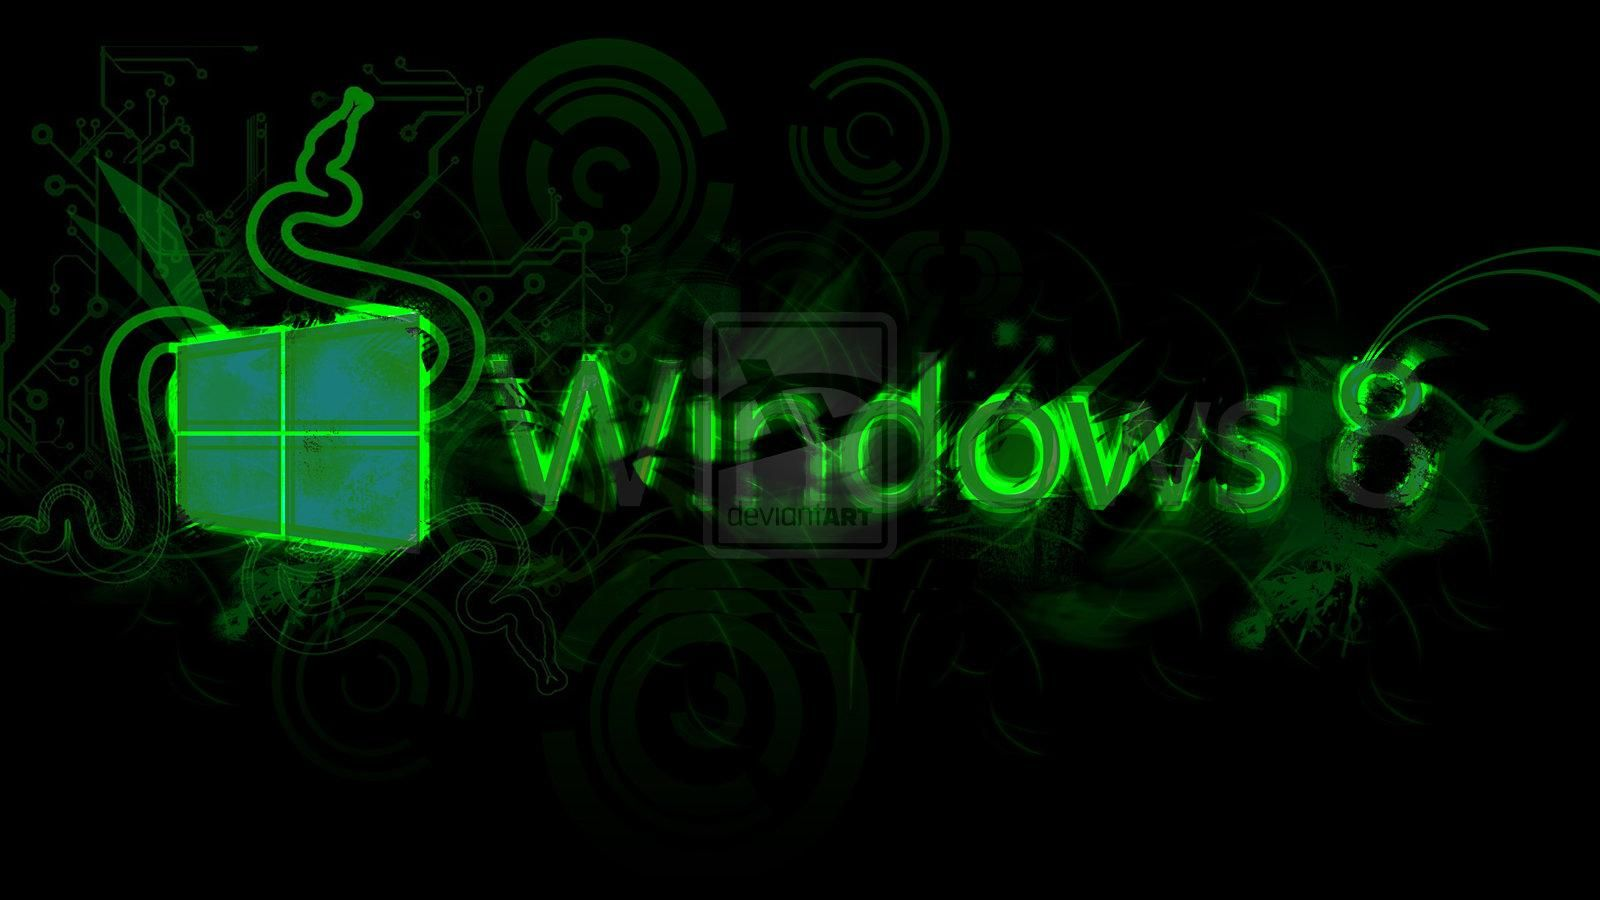 Download Hd Wallpapers For Windows 8 1 Hdwallpapershits Com Papel De Parede Do Windows Papeis De Parede Papel De Parede Mac